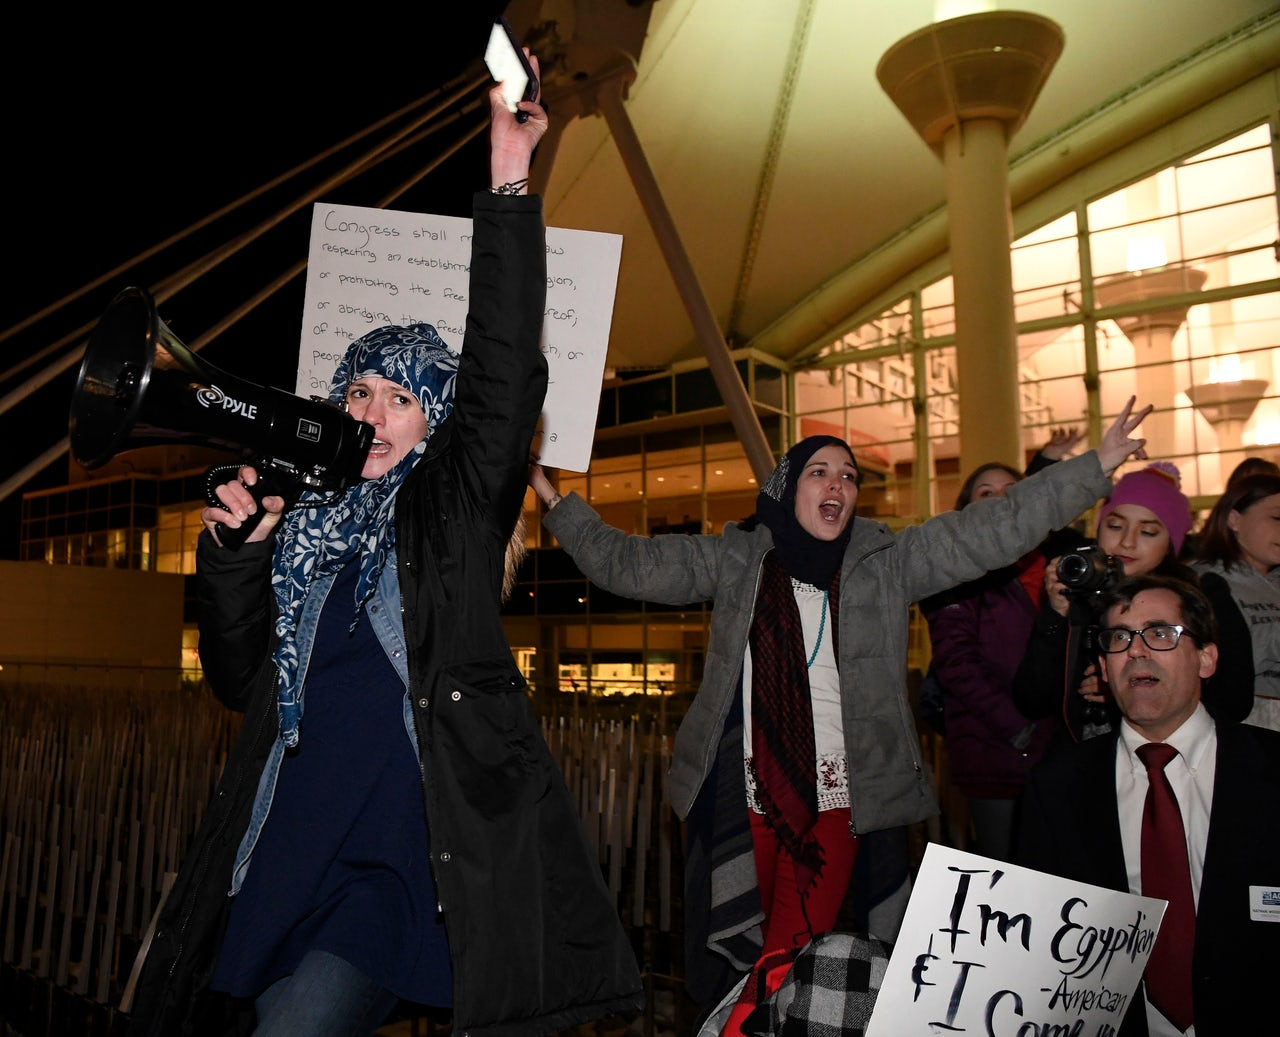 Amal Kassir, a Syrian American, leads the crowd during an immigration protest at Denver International Airport.